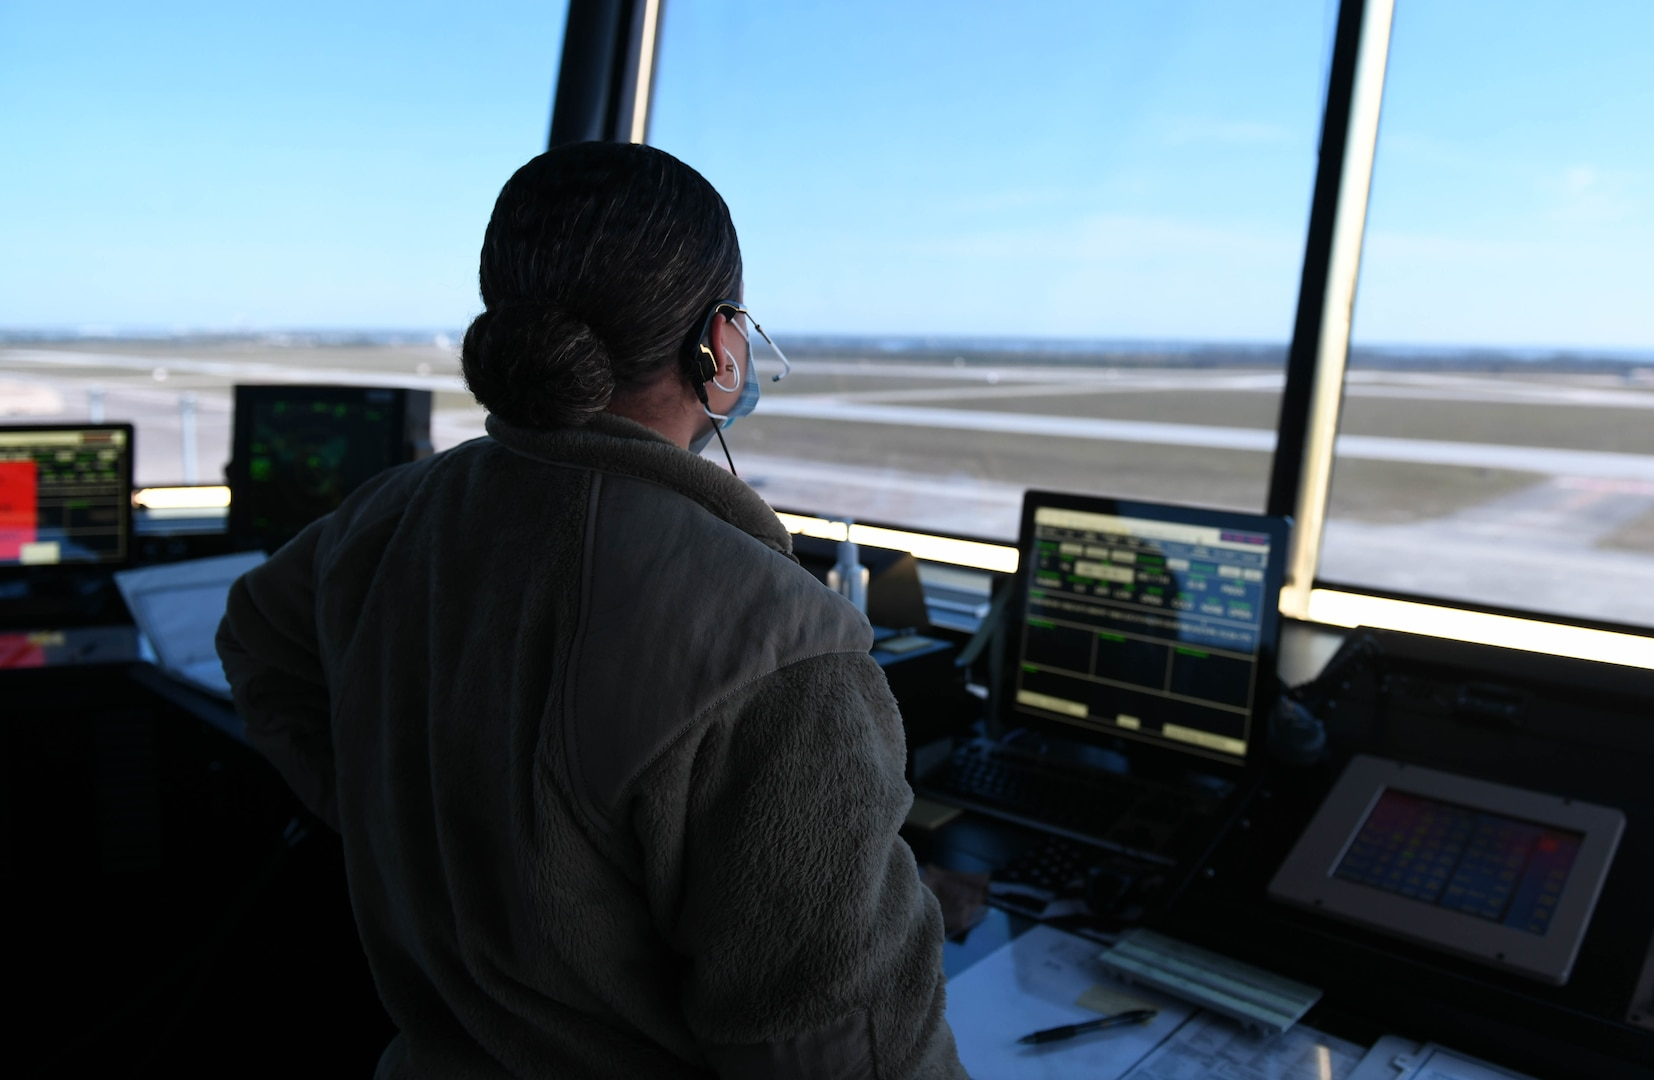 An Airman looks at the flightline from the air traffic control tower.